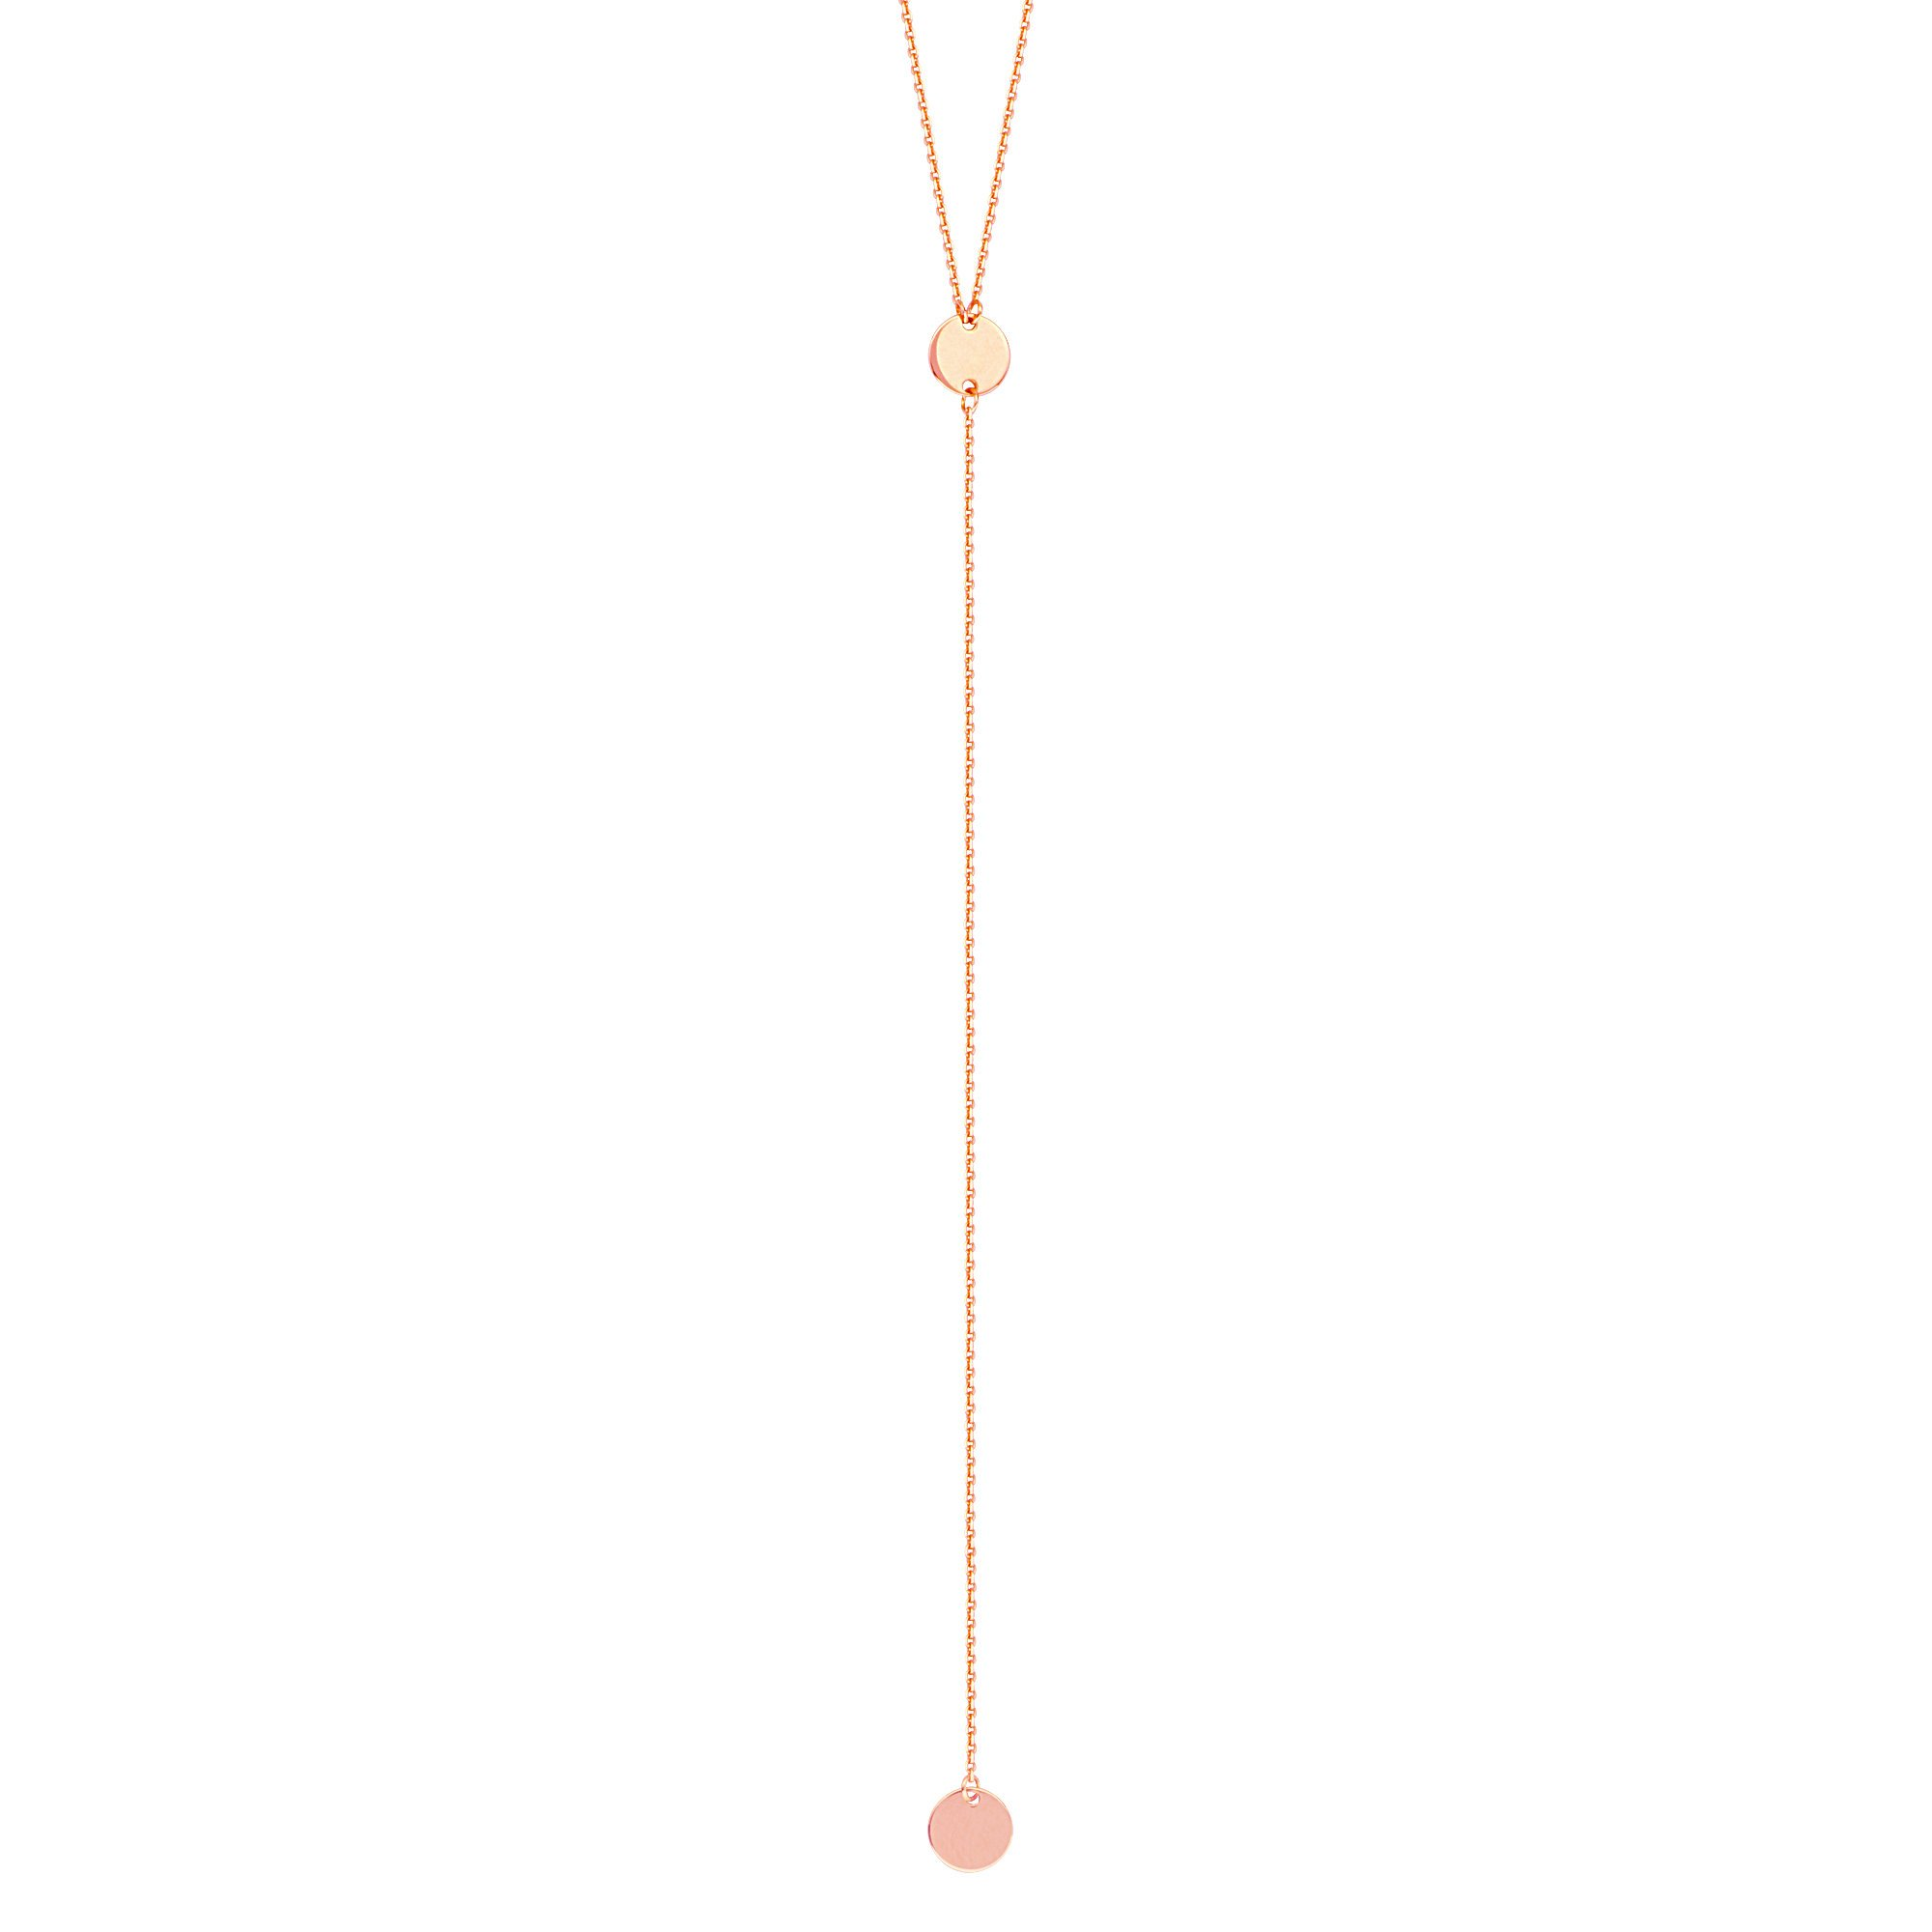 Hawley Street Y-style Lariat Necklace with Disks 14k Rose Gold by AzureBella Jewelry